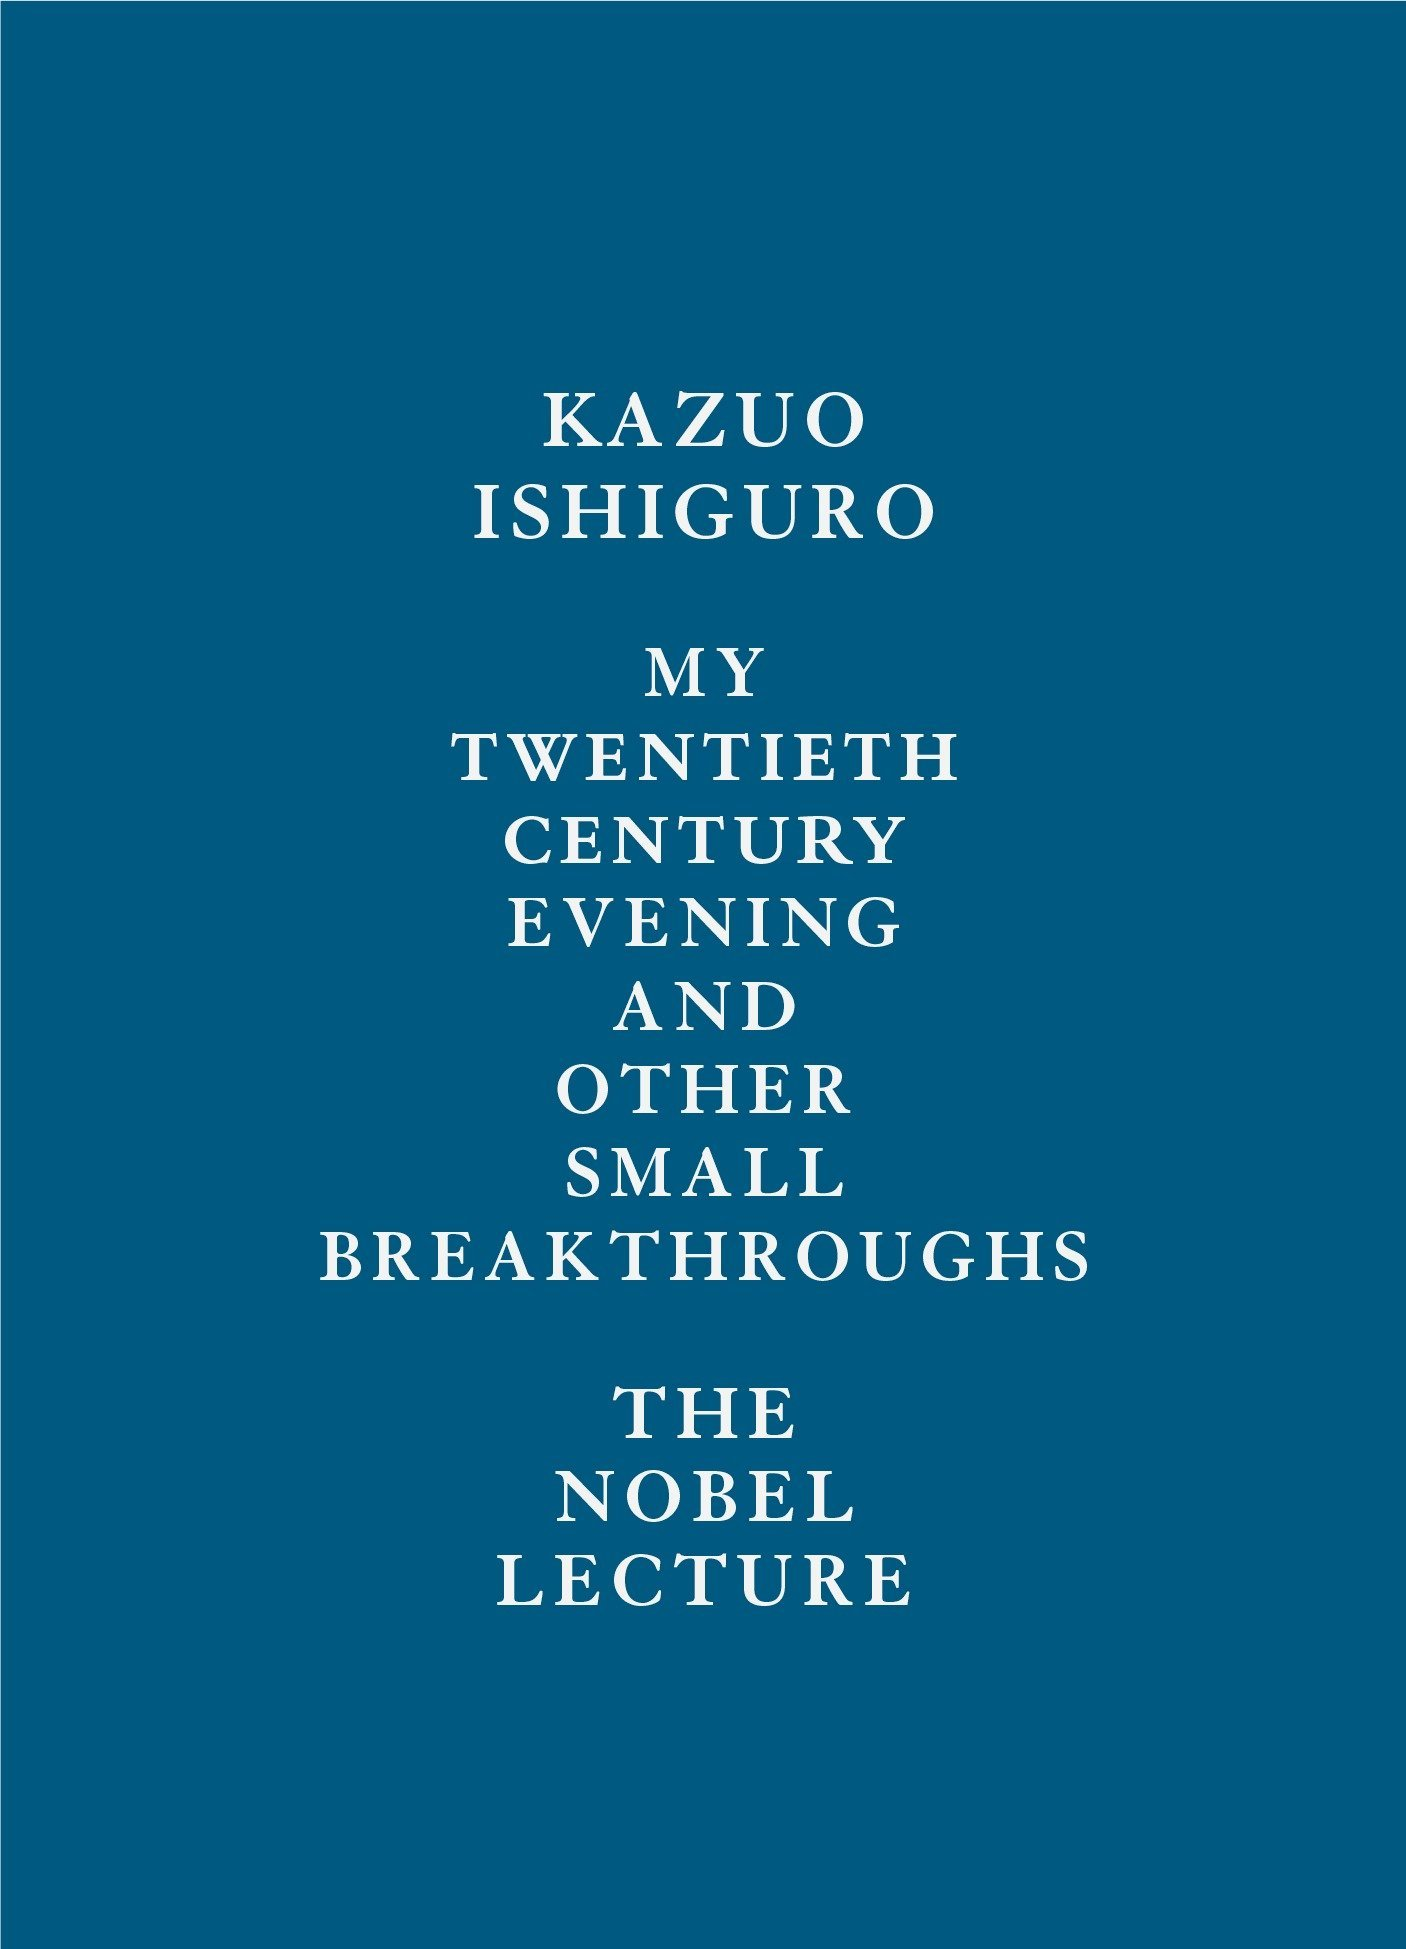 My Twentieth Century Evening and Other Small Breakthroughs: The Nobel Lecture pdf epub